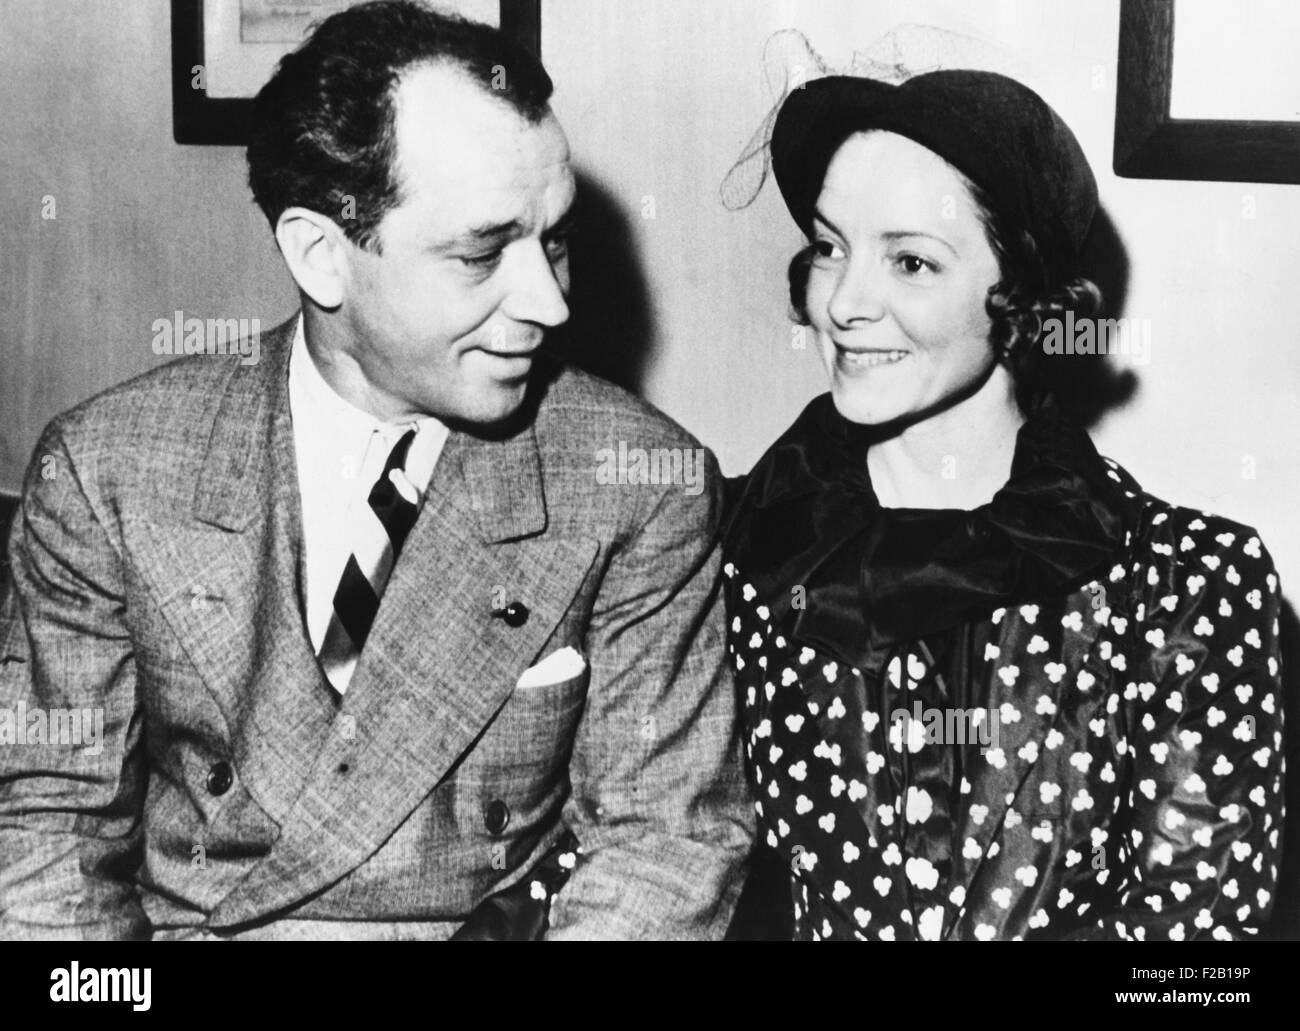 Charles MacArthur, playwright, and his wife actress Helen Hayes in court in Chicago, July 2, 1936. Hayes was sued - Stock Image